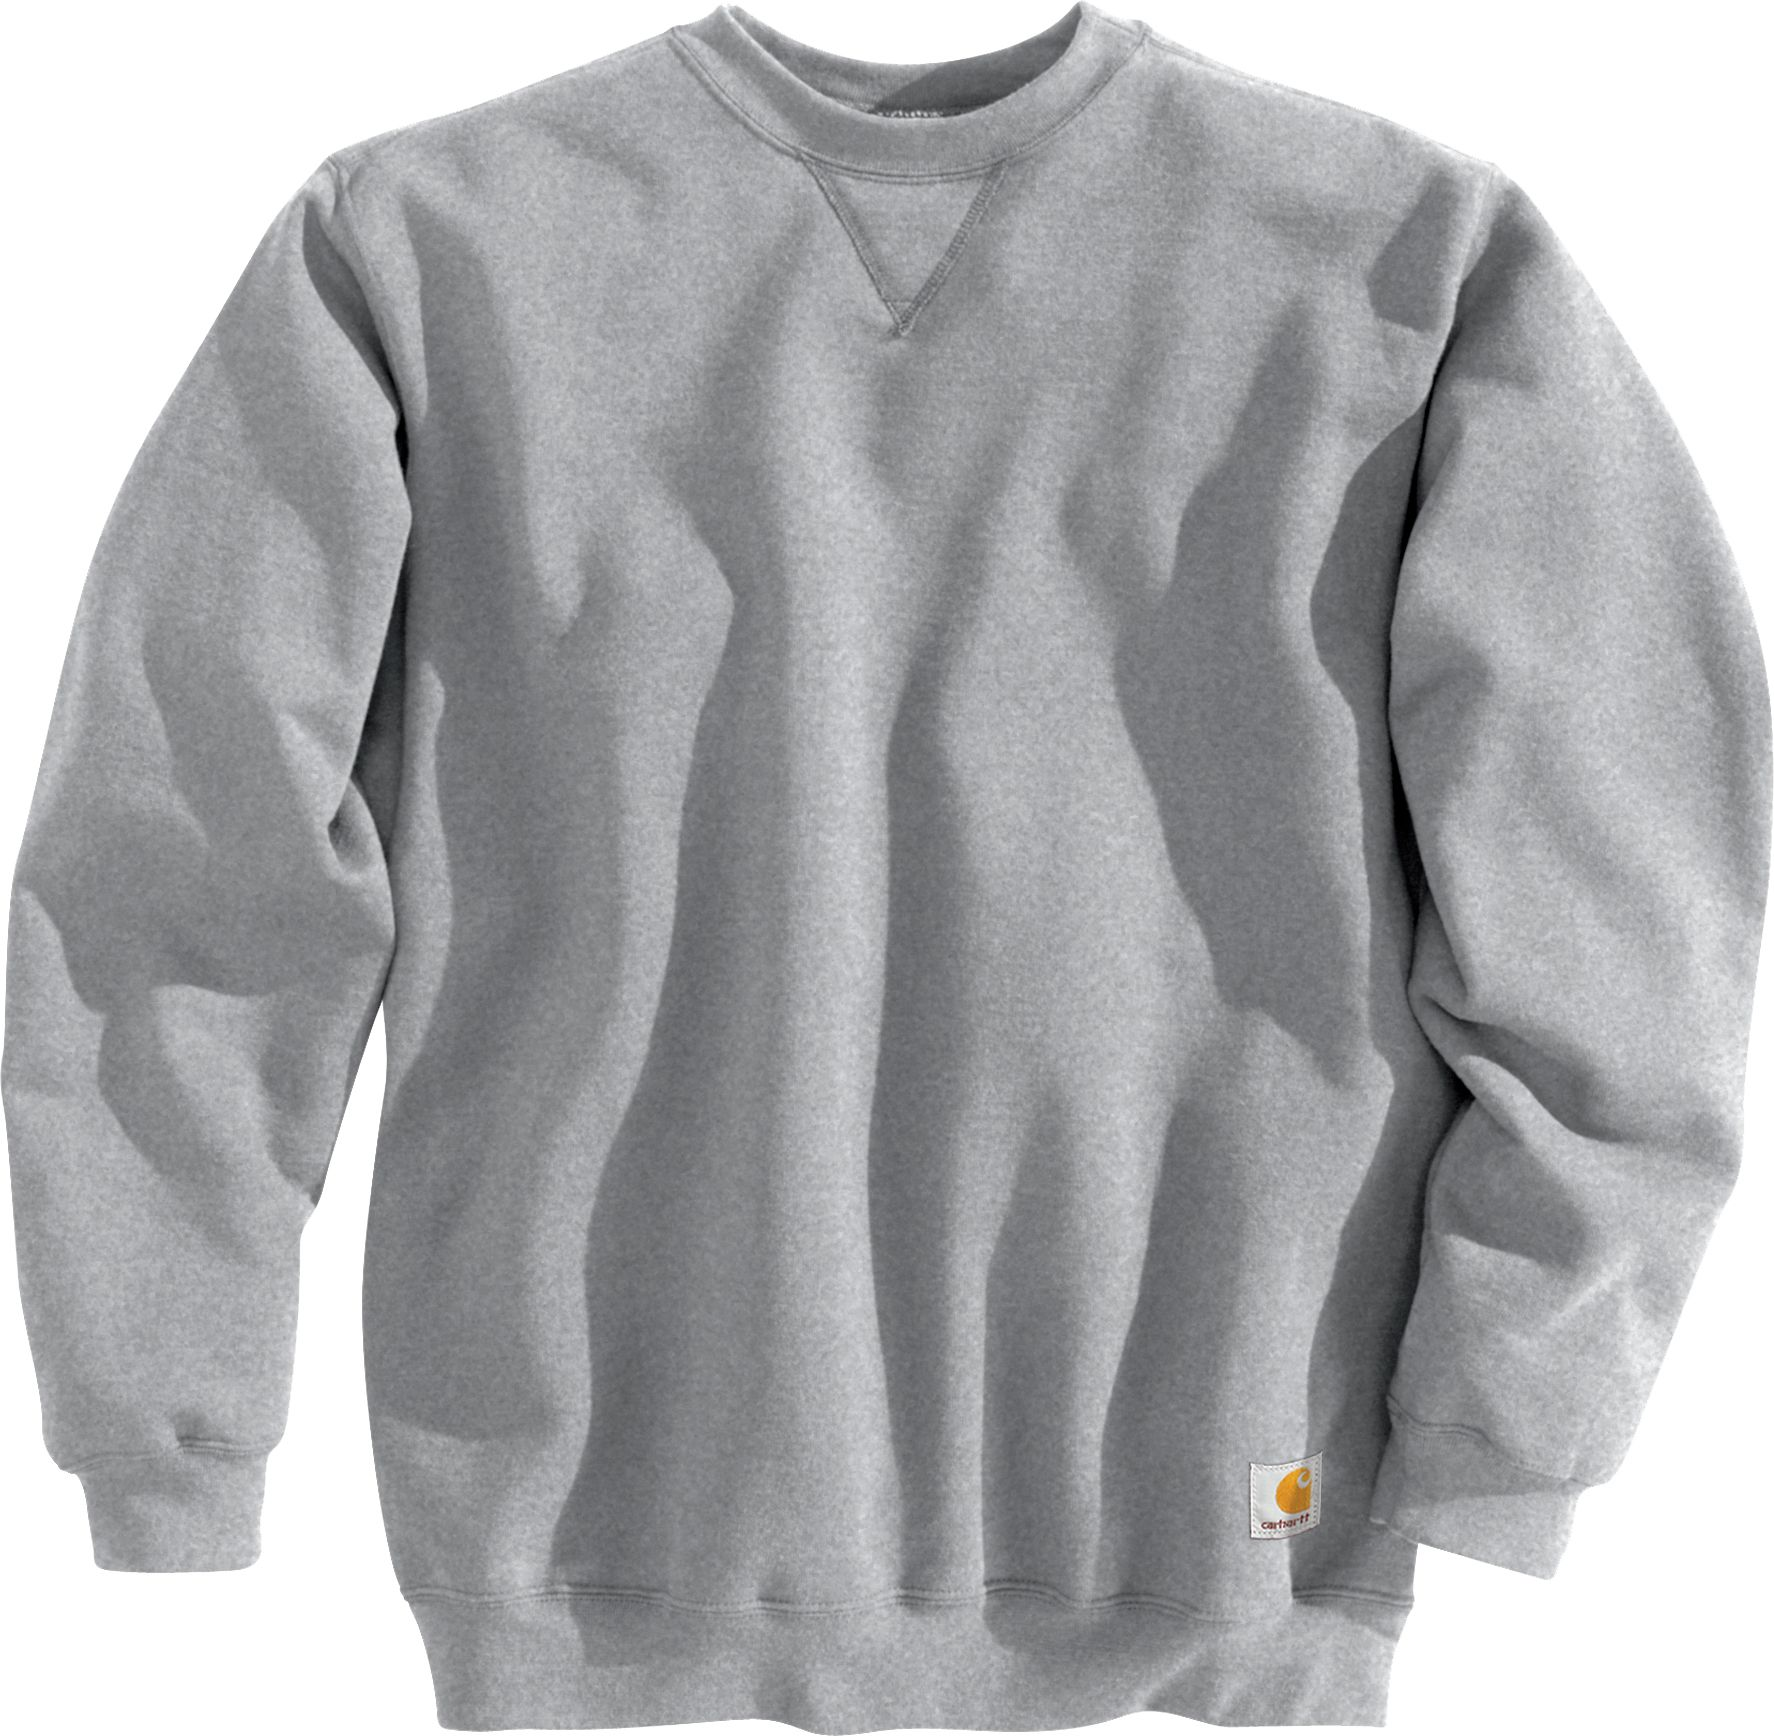 Pullover Crew Neck Sweatshirts | DICK'S Sporting Goods